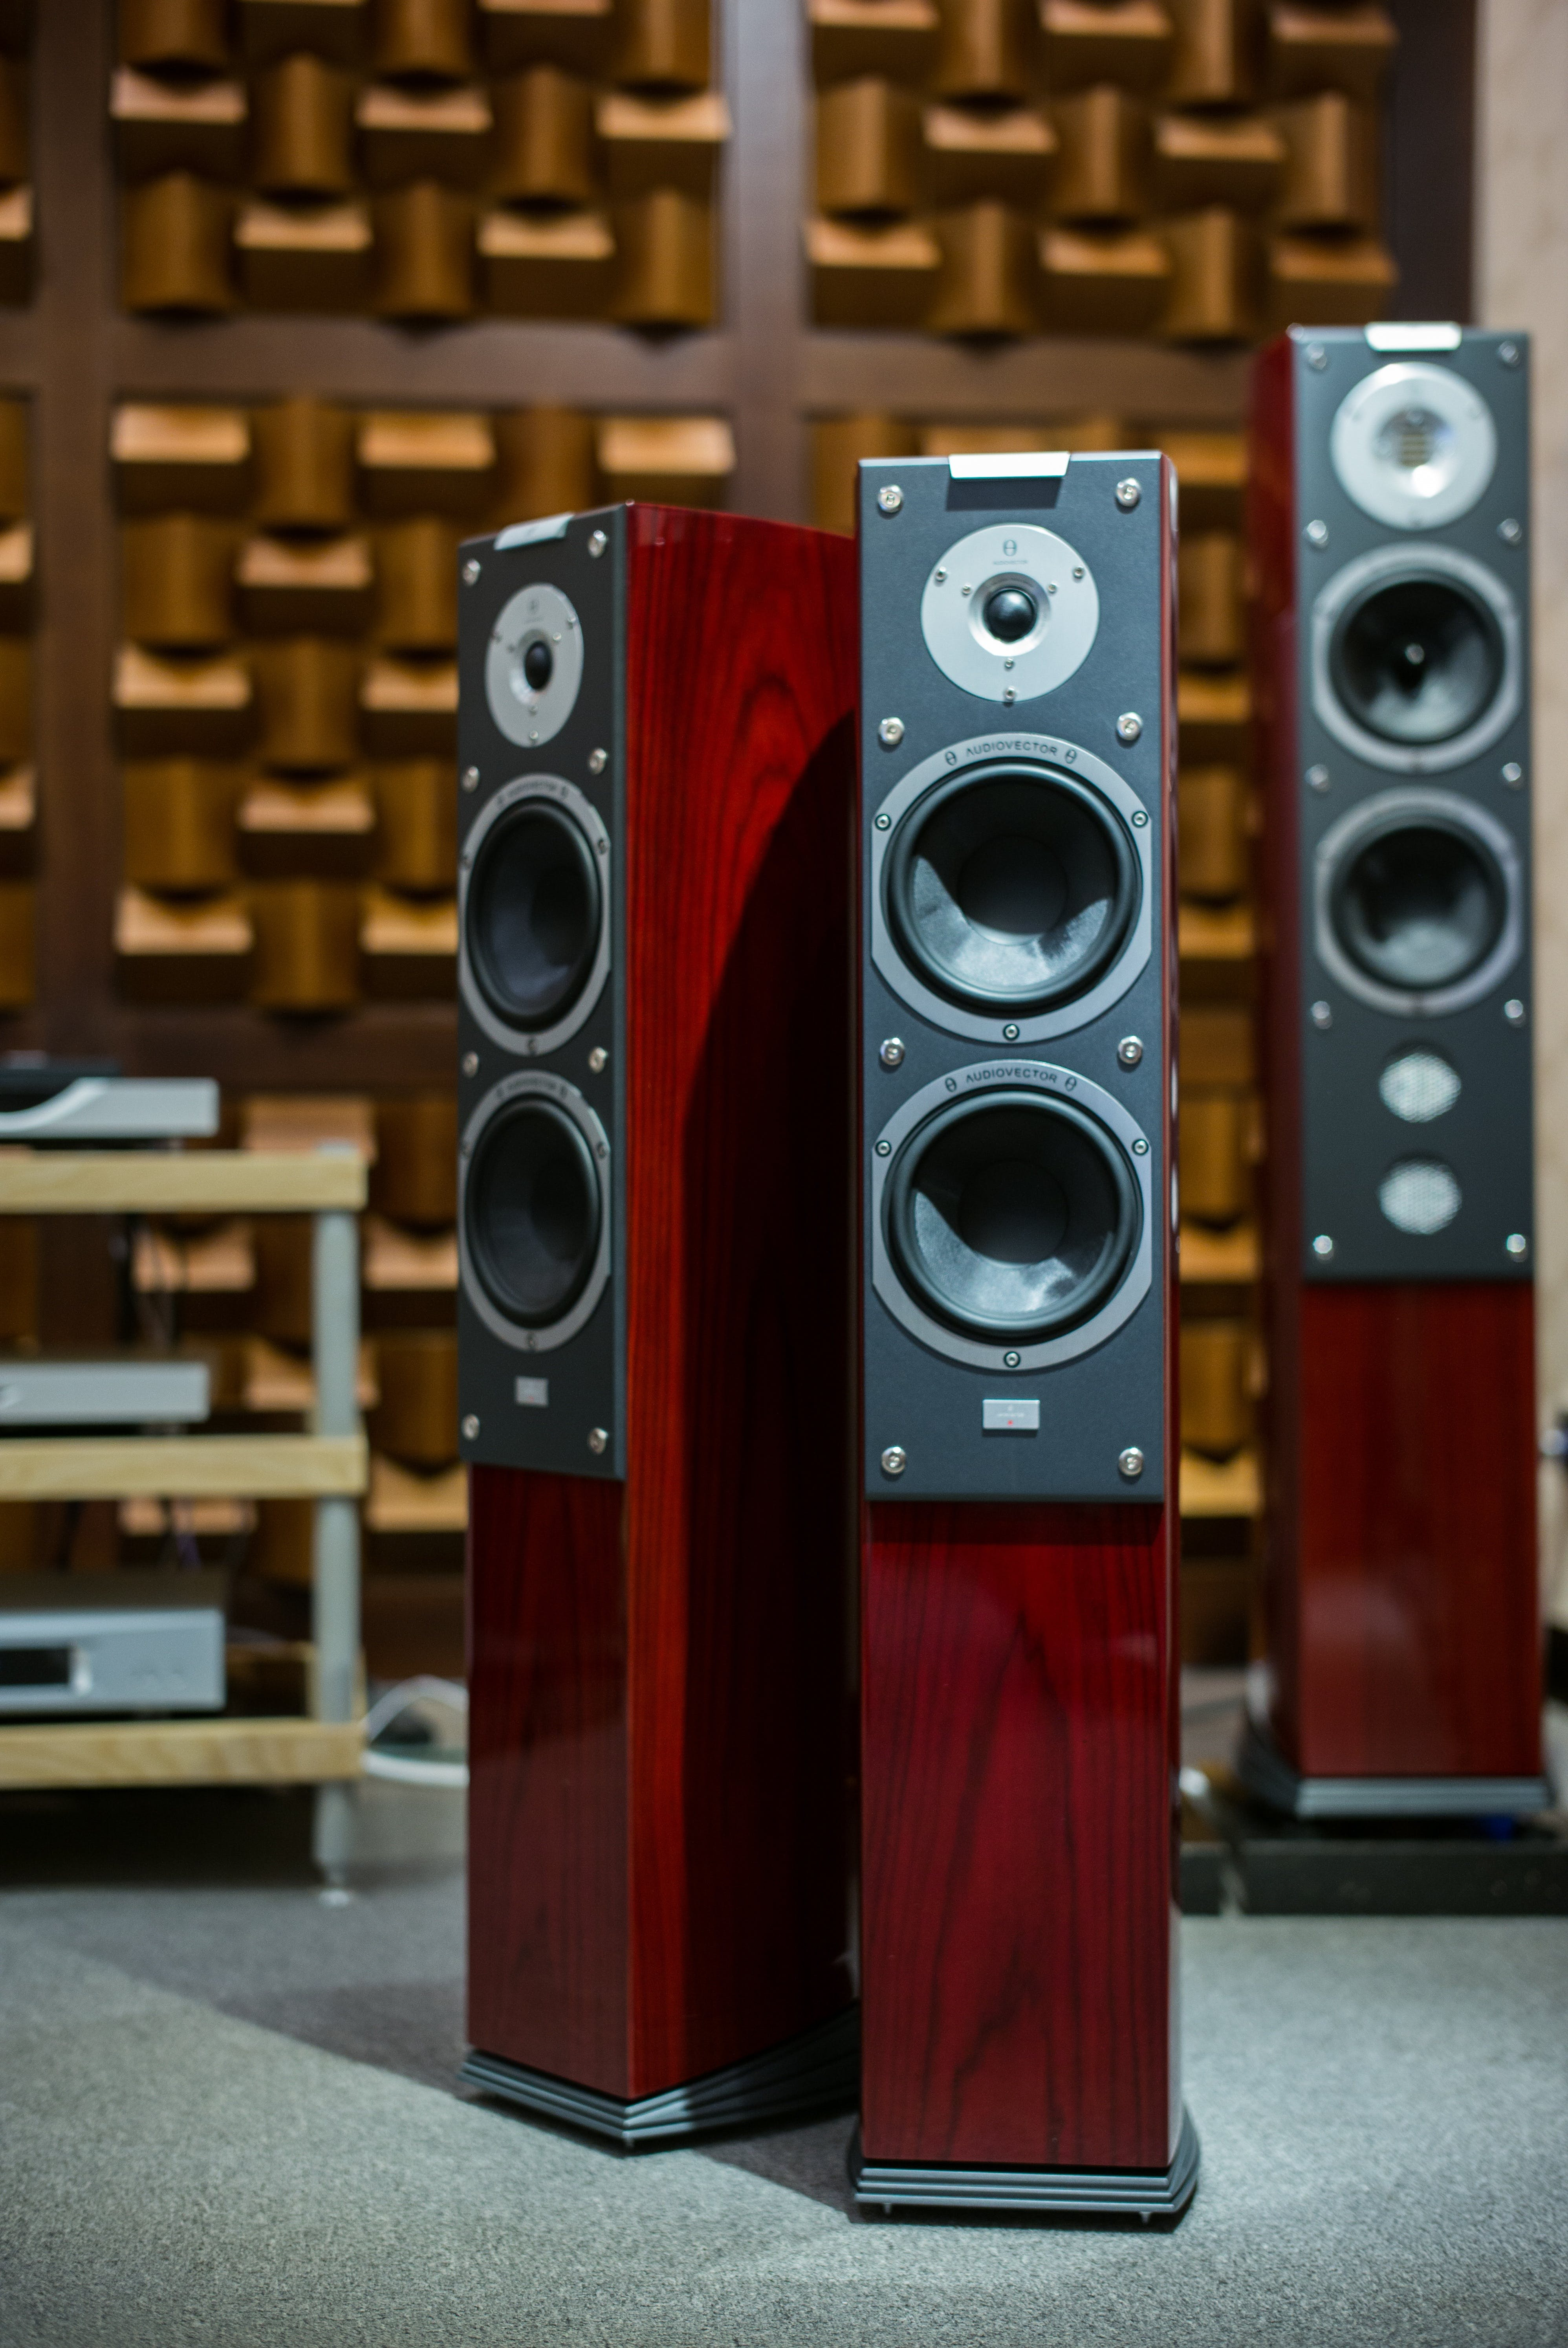 Three Red Tower Speakers